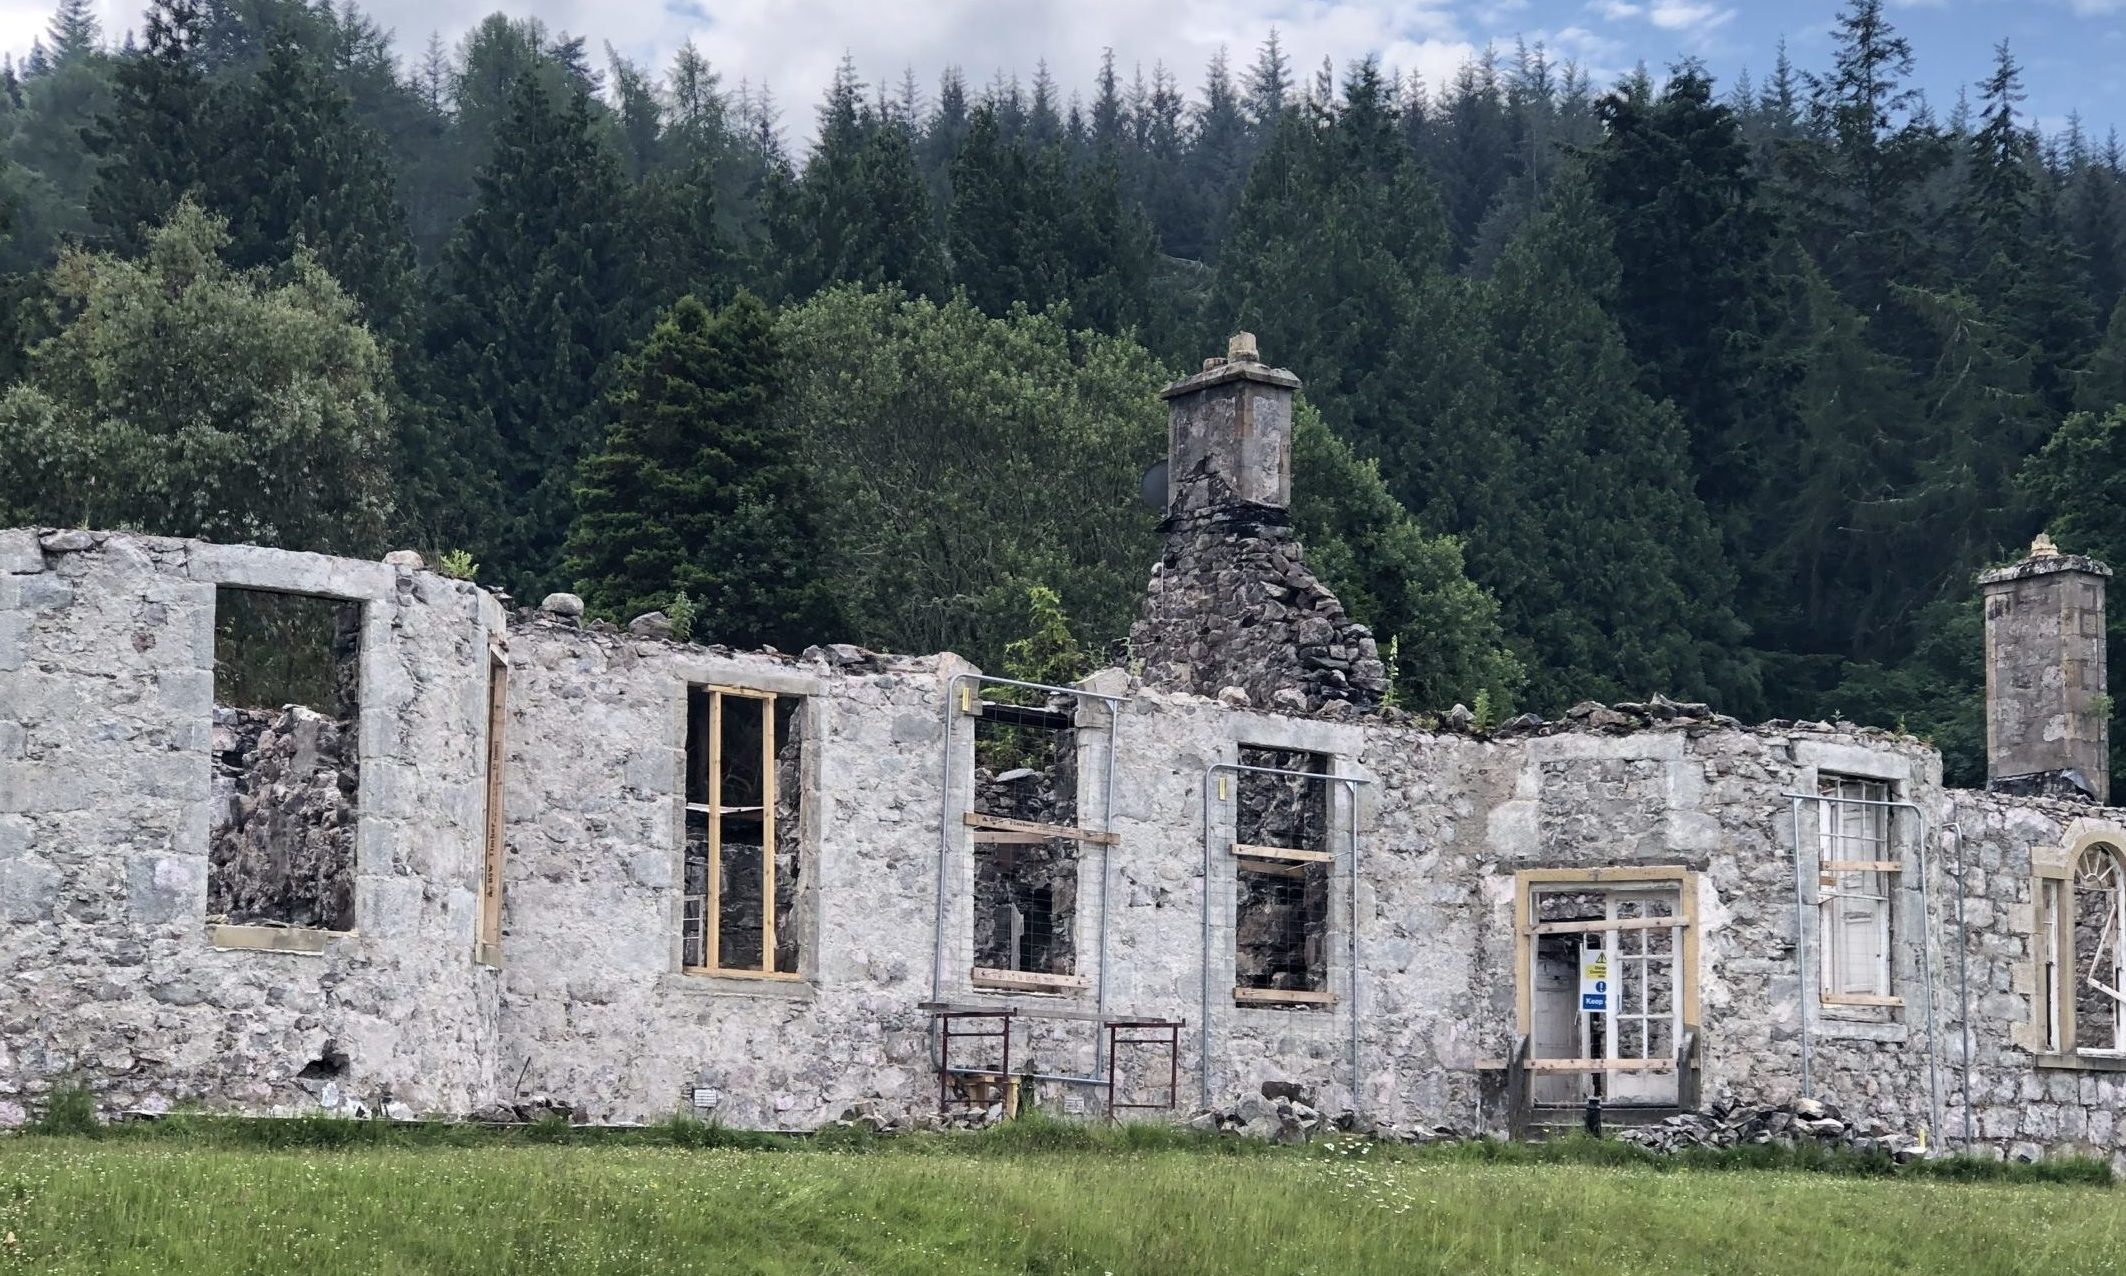 Boleskine House with concrete render removed